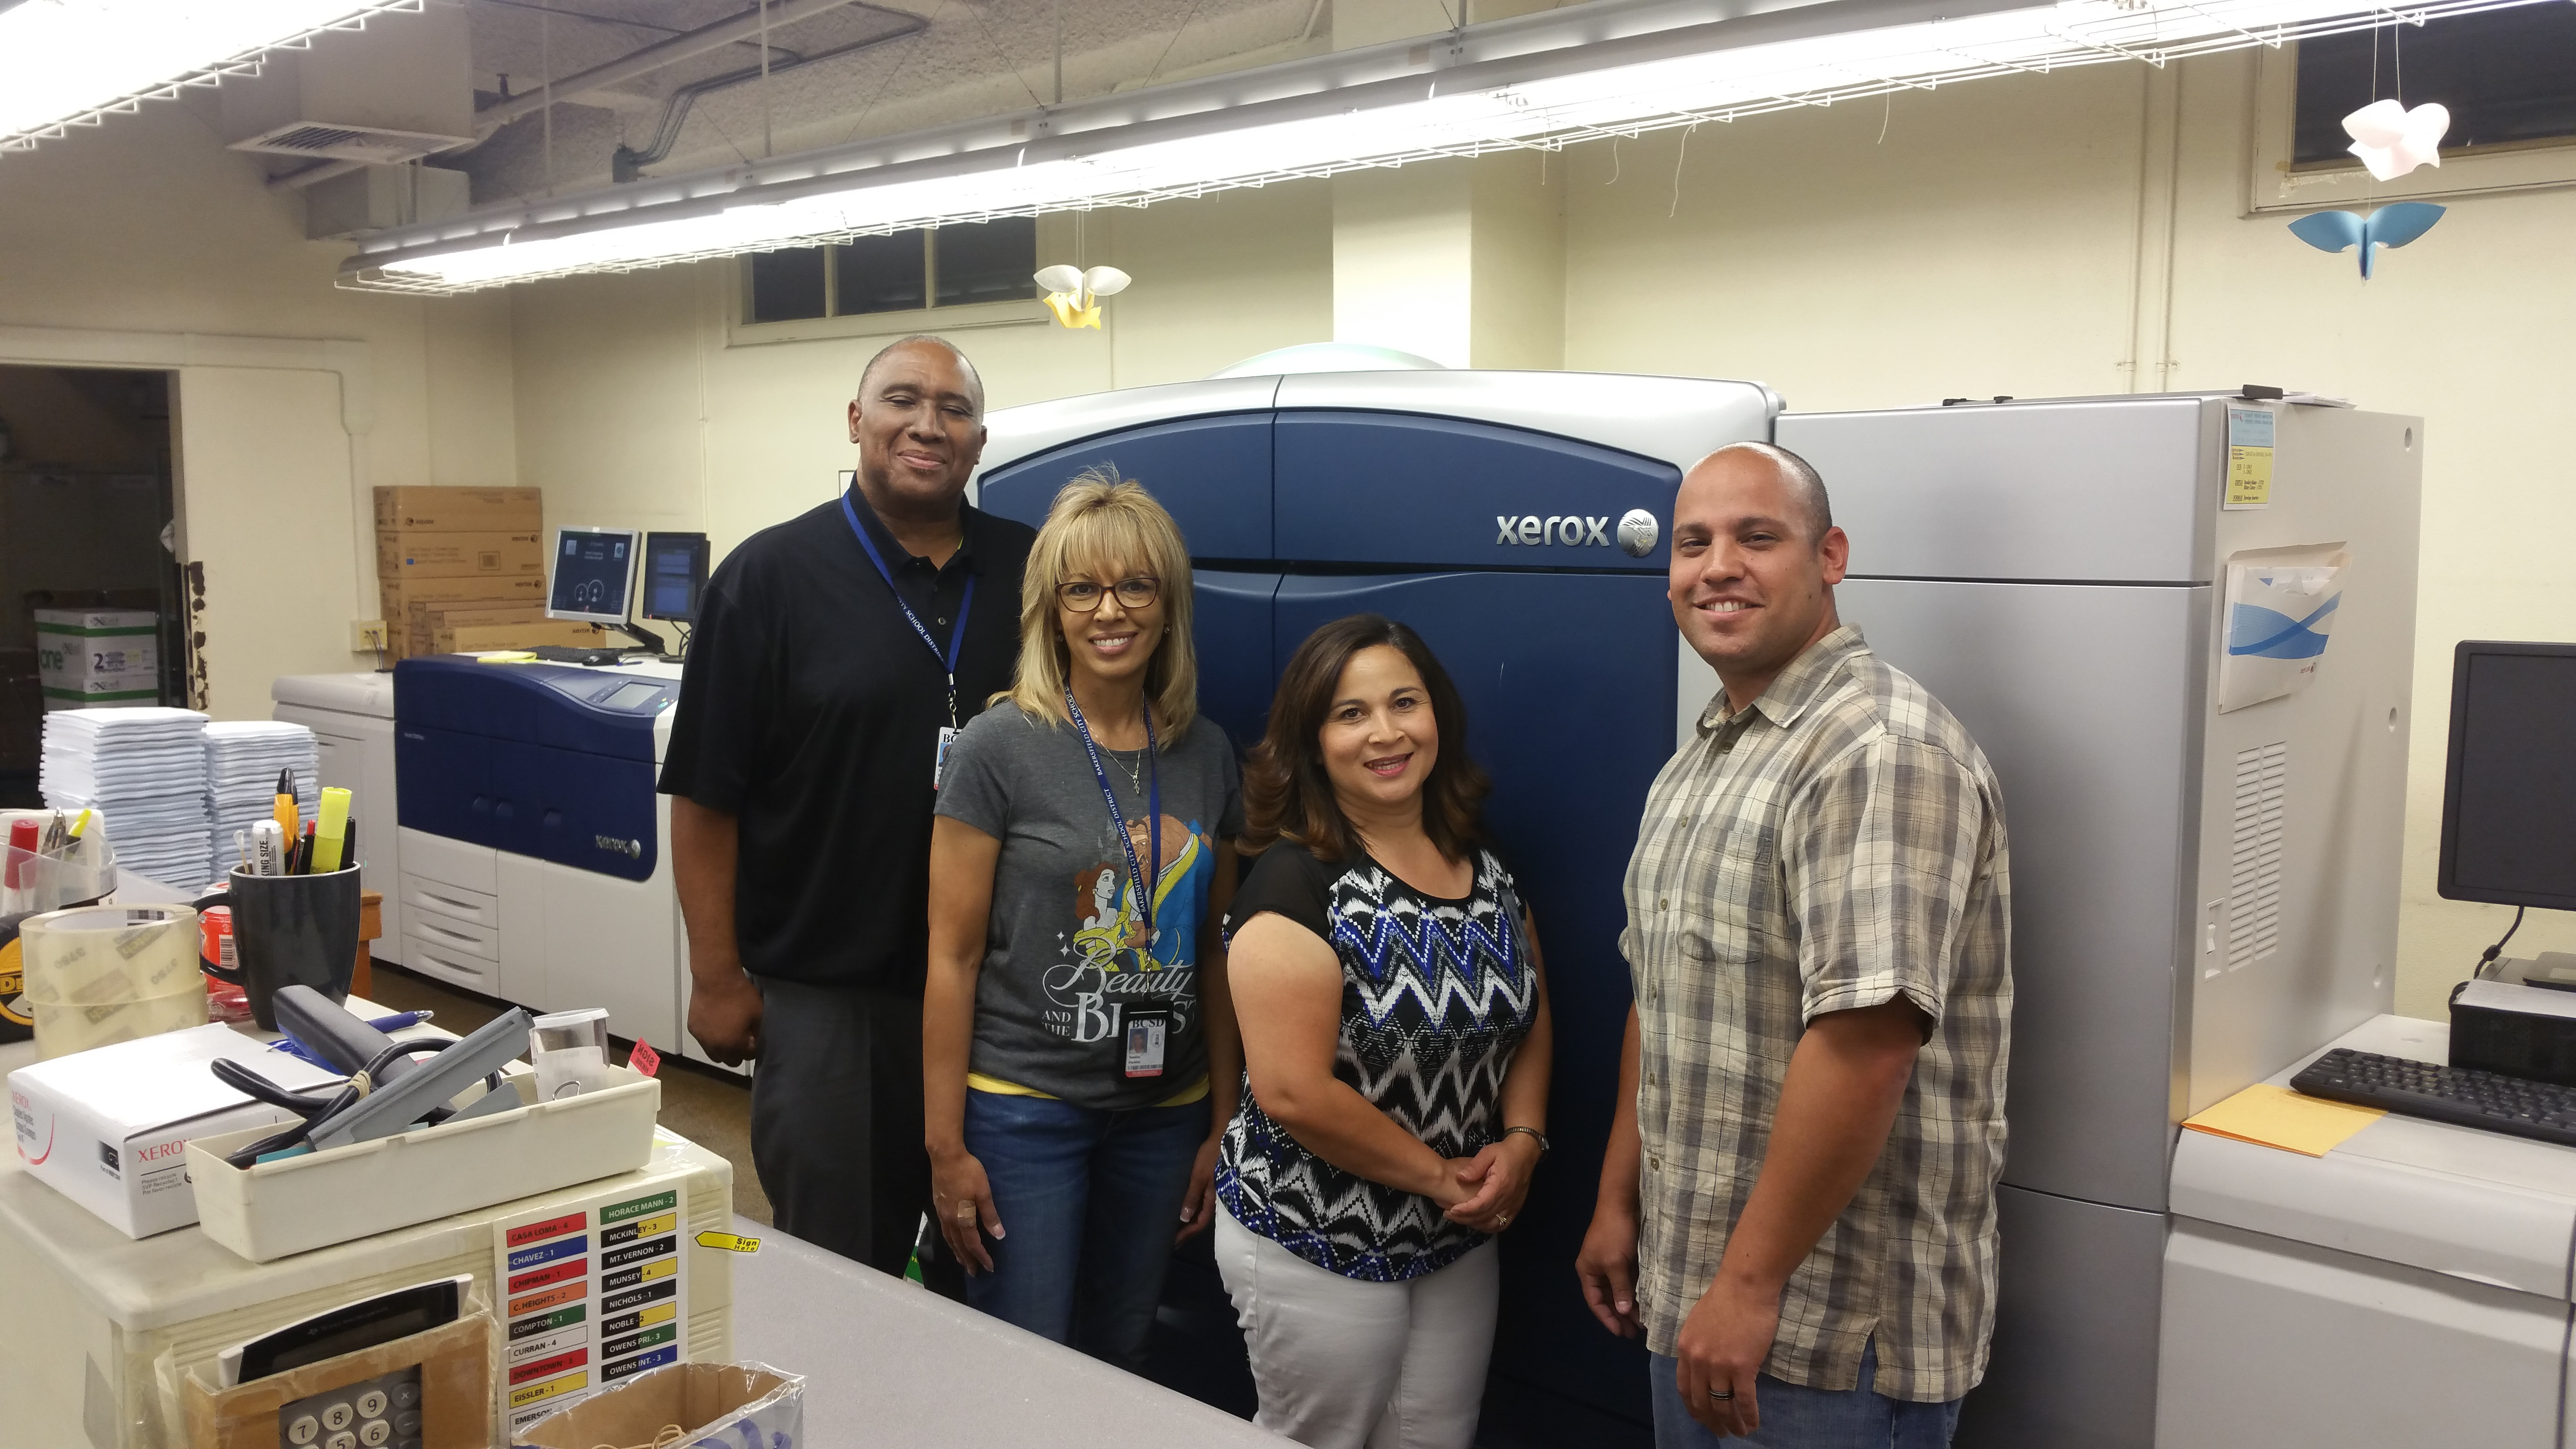 Mike Frazier and his team proudly print the yearbooks for Bakersfield City School District.